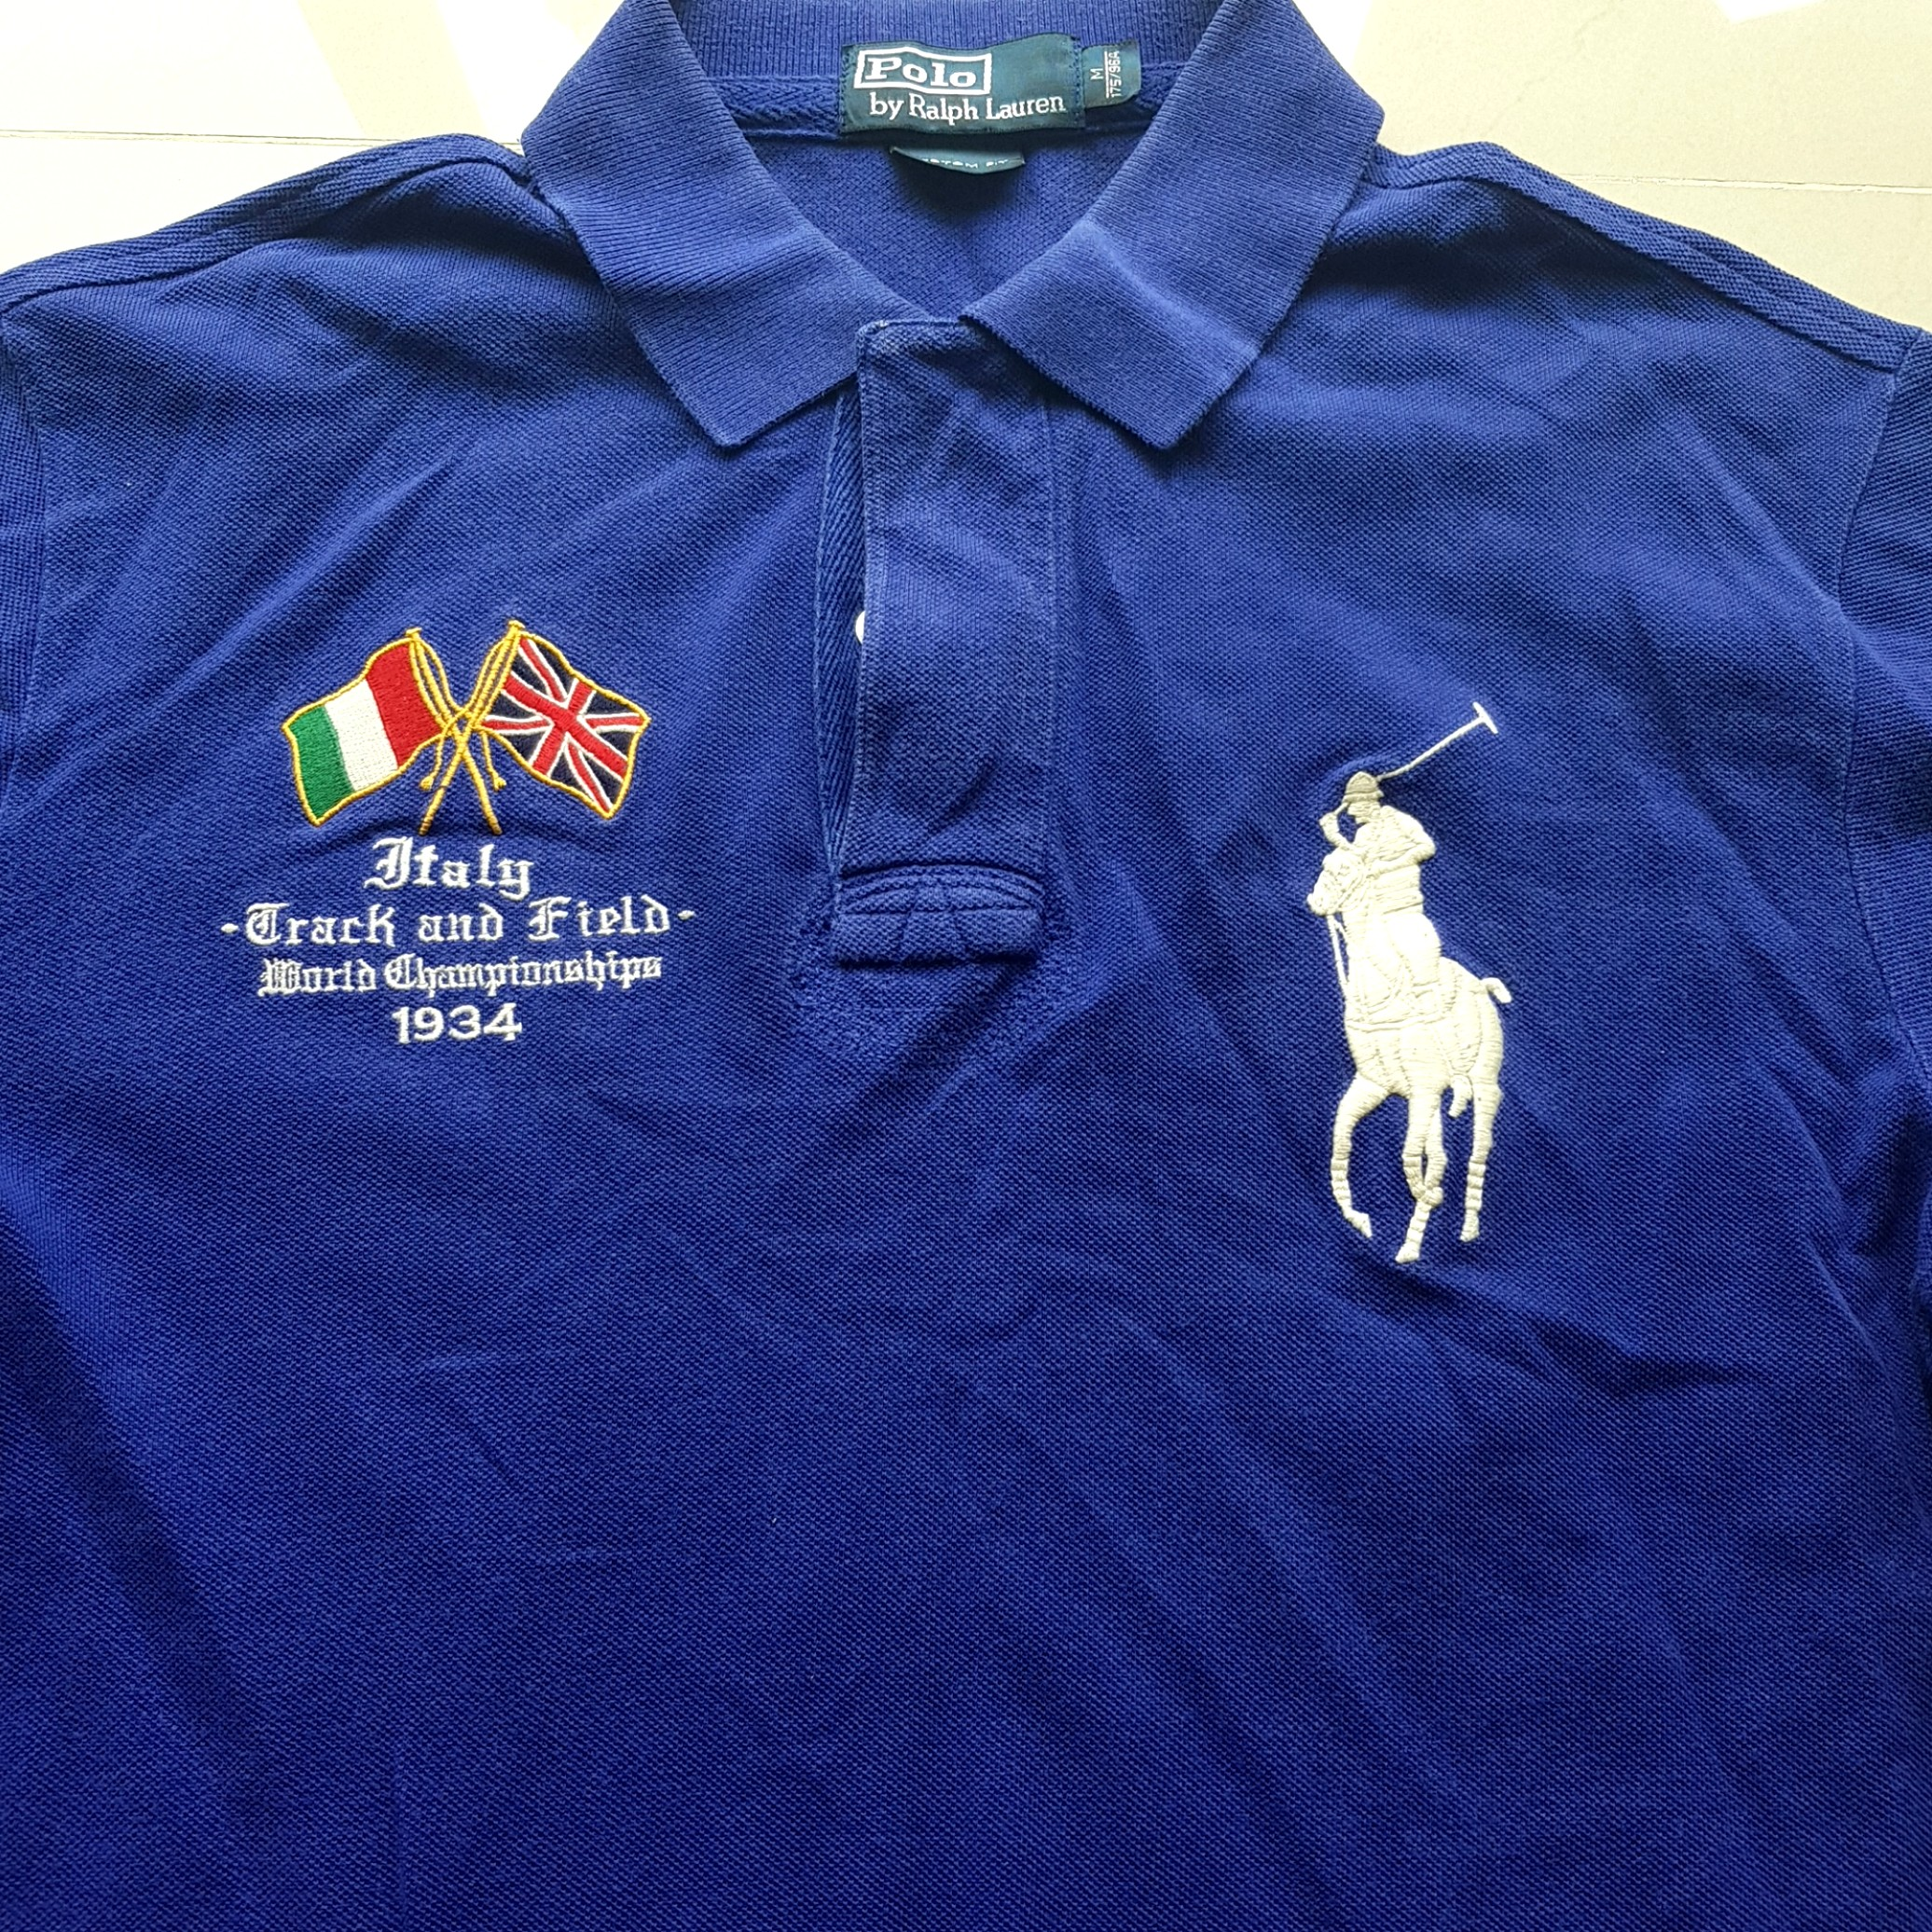 d2bcfa00 Polo Ralph italy track n field top, Men's Fashion, Clothes, Tops on ...